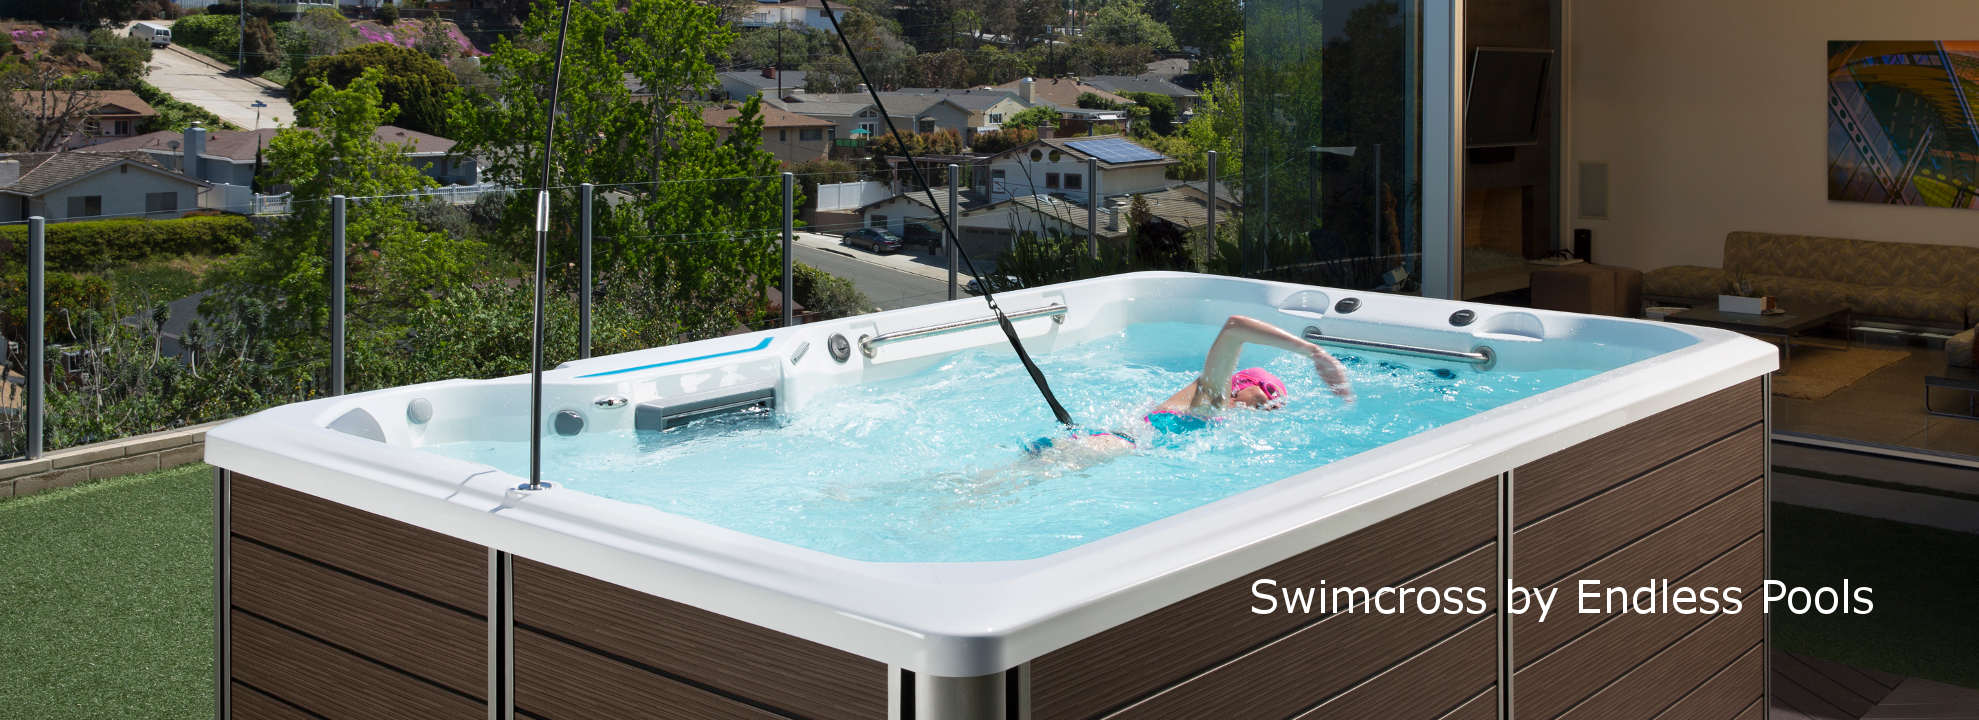 Swimcross aquatic exercise system from endless pools - How much is an endless pool swim spa ...